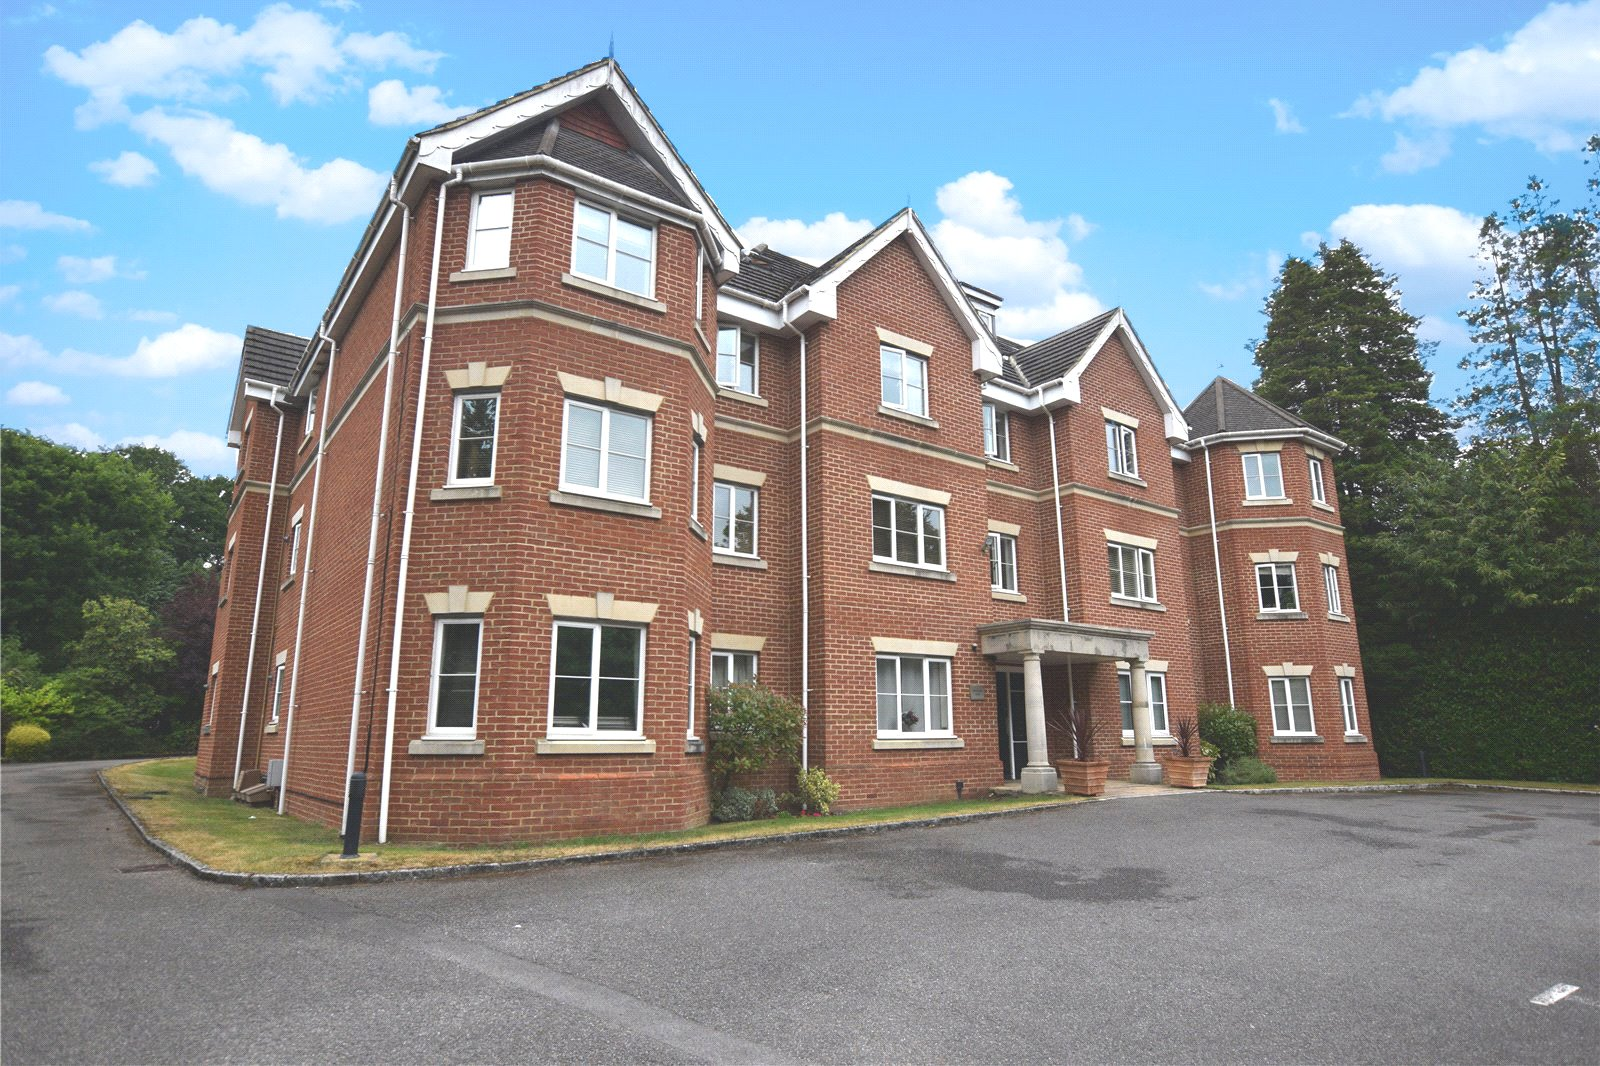 2 Bedrooms Apartment Flat for sale in Crawley Rise, 18 Portsmouth Road, Camberley, Surrey, GU15